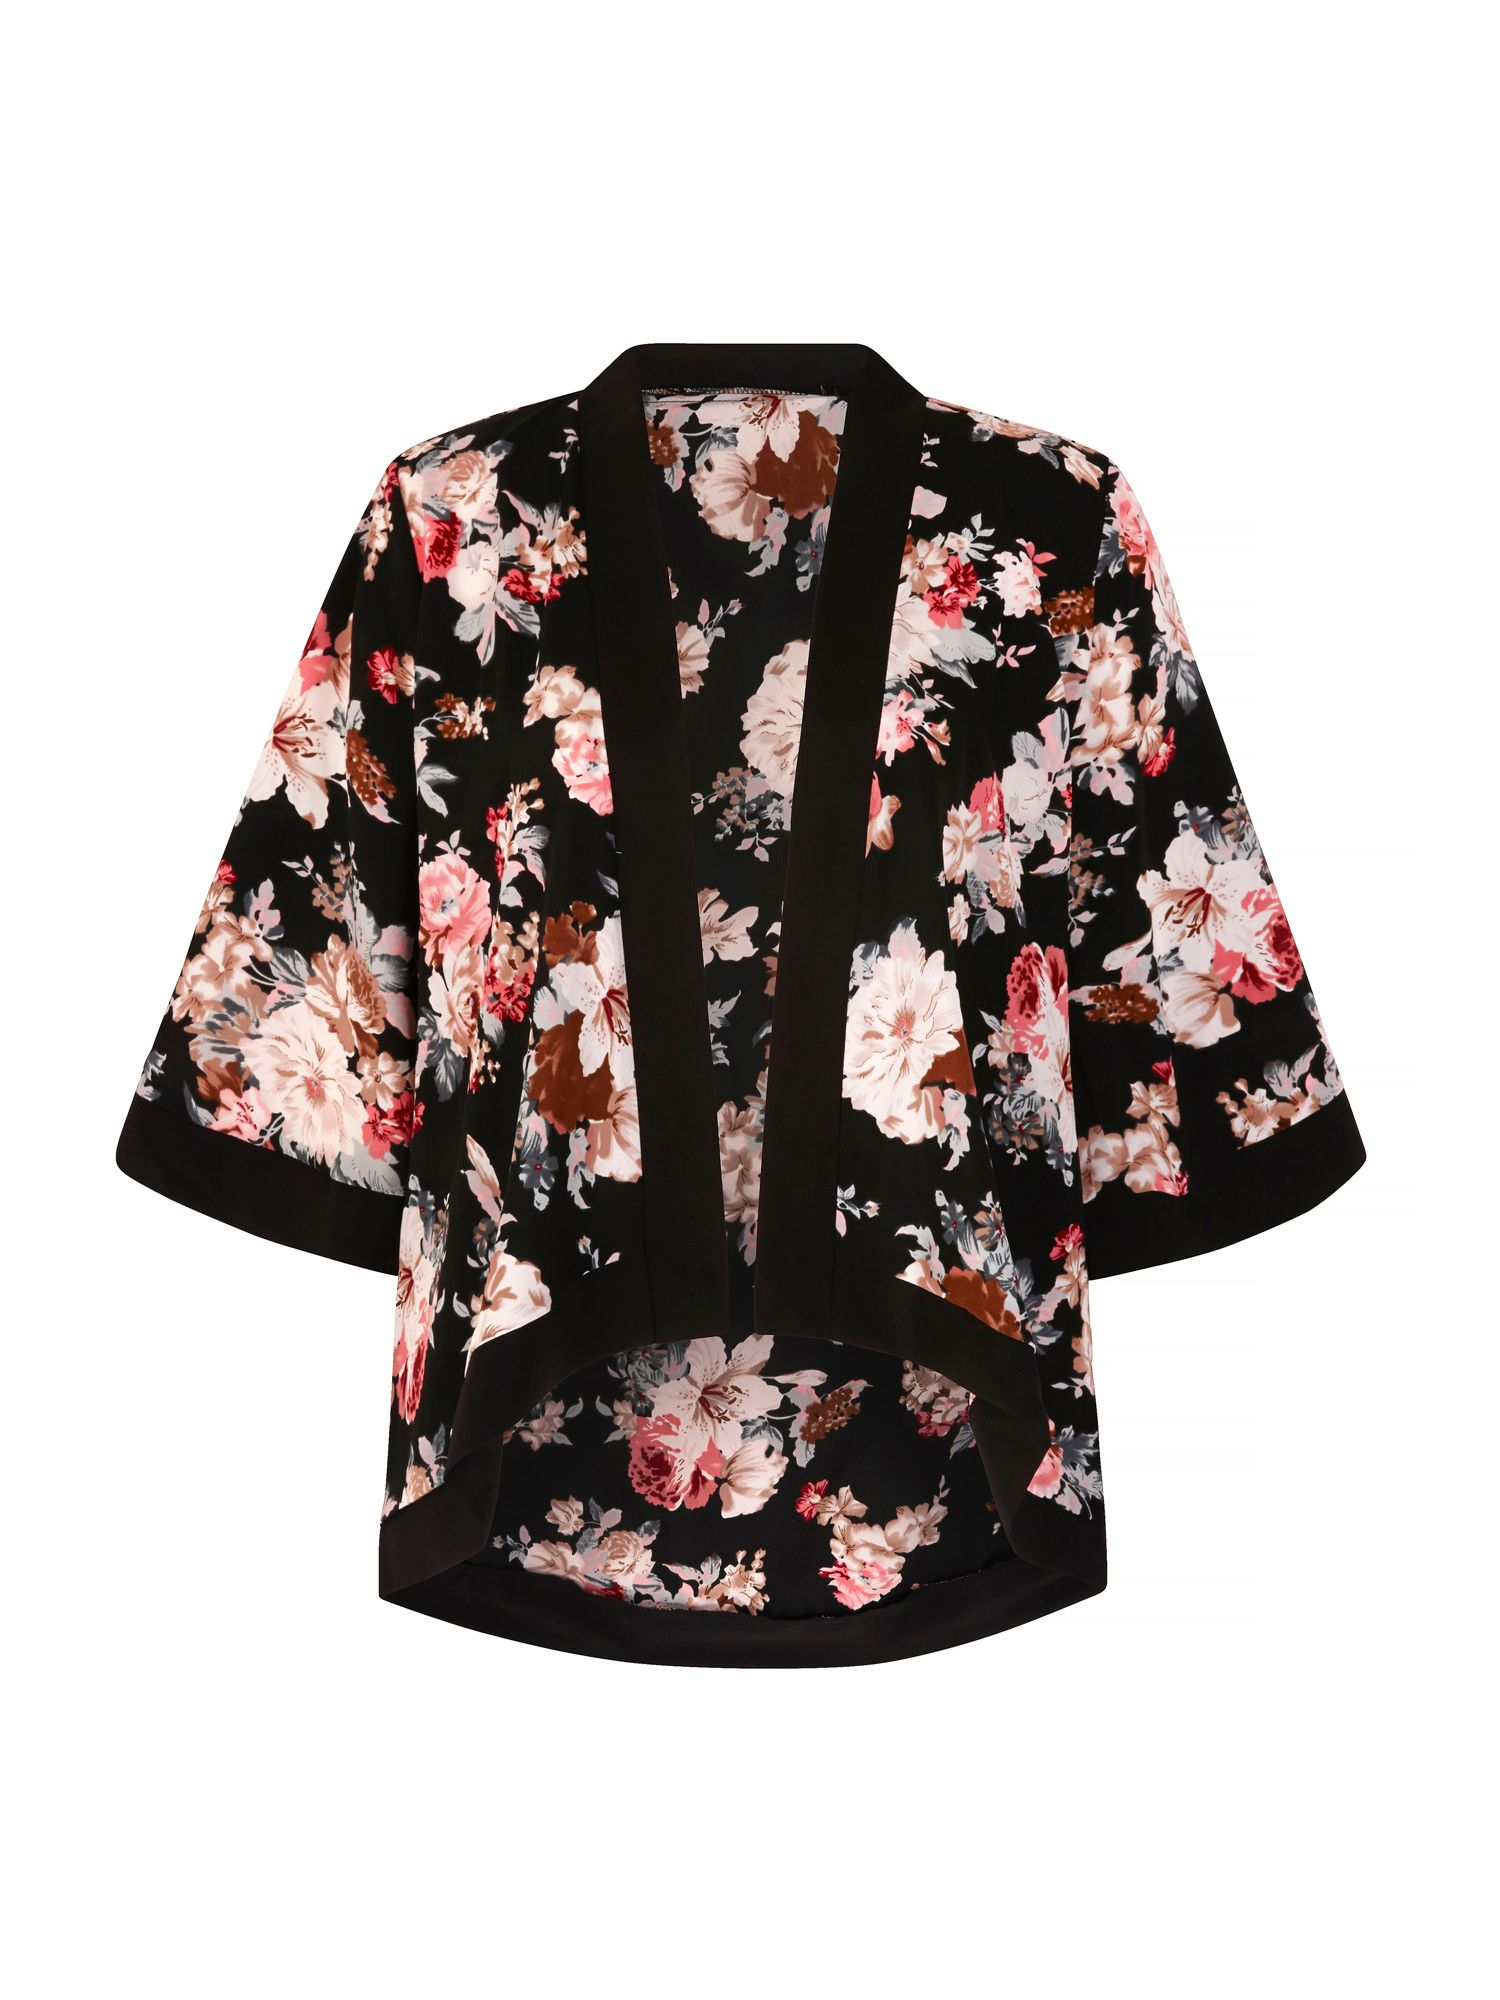 Popular mens kimono jacket of Good Quality and at Affordable Prices You can Buy on AliExpress. We believe in helping you find the product that is right for you.